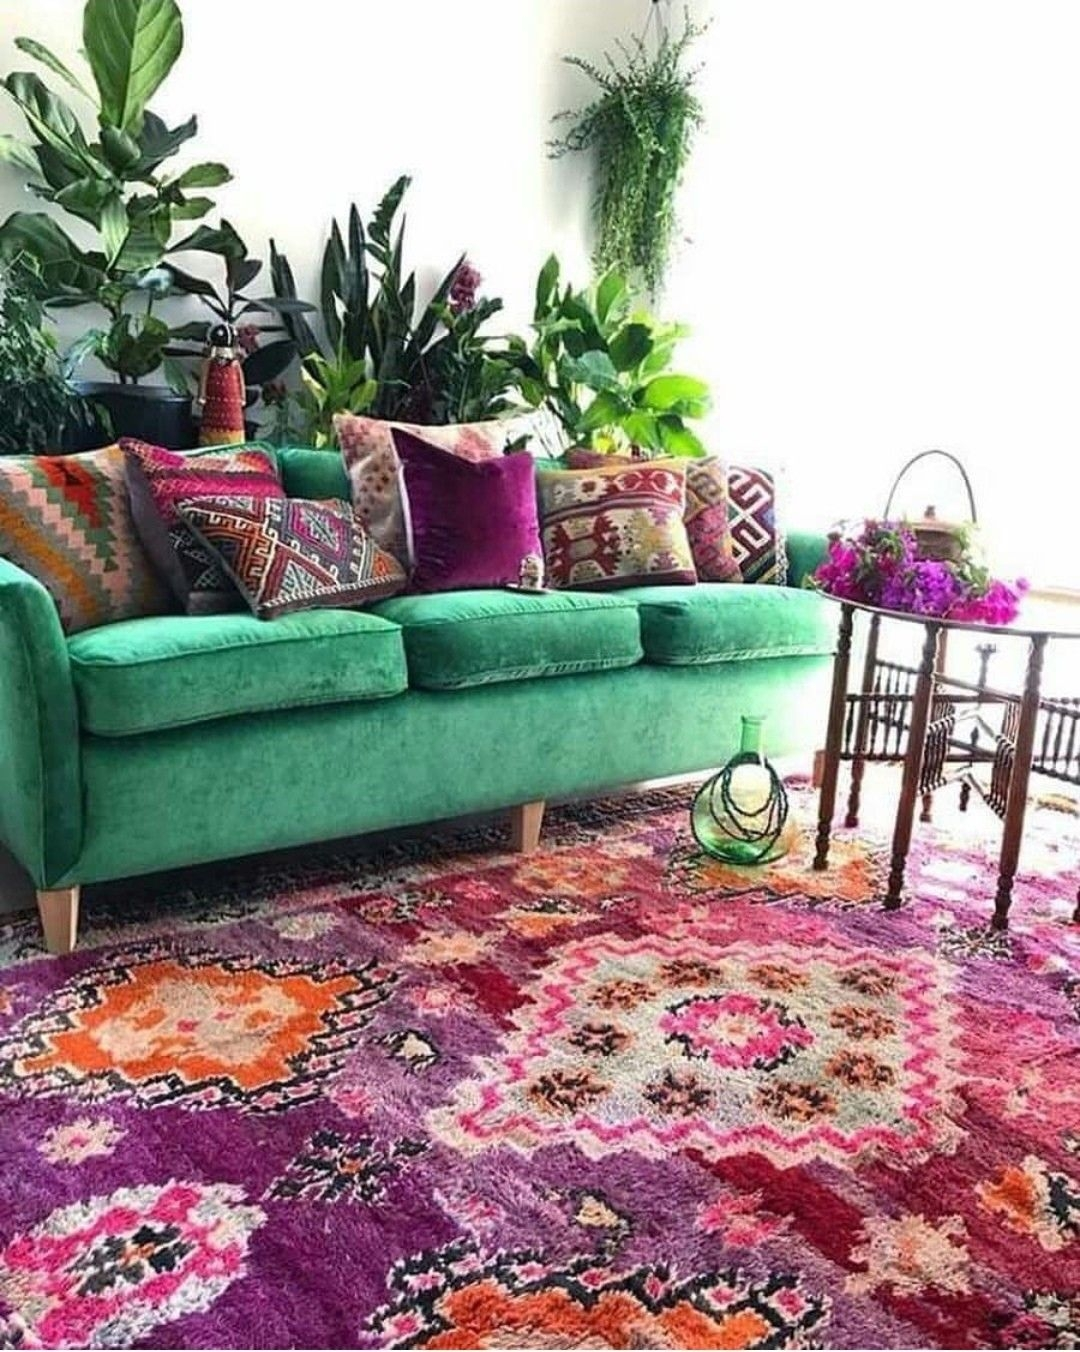 Impressive Home Decor Ideas Living Room Modern Boho area Rug with Plum Accents On Engaging Pin by Sharon Gross On Intérieur On Home Decor Ideas Living Room Modern Boho area Rug with Plum Accents